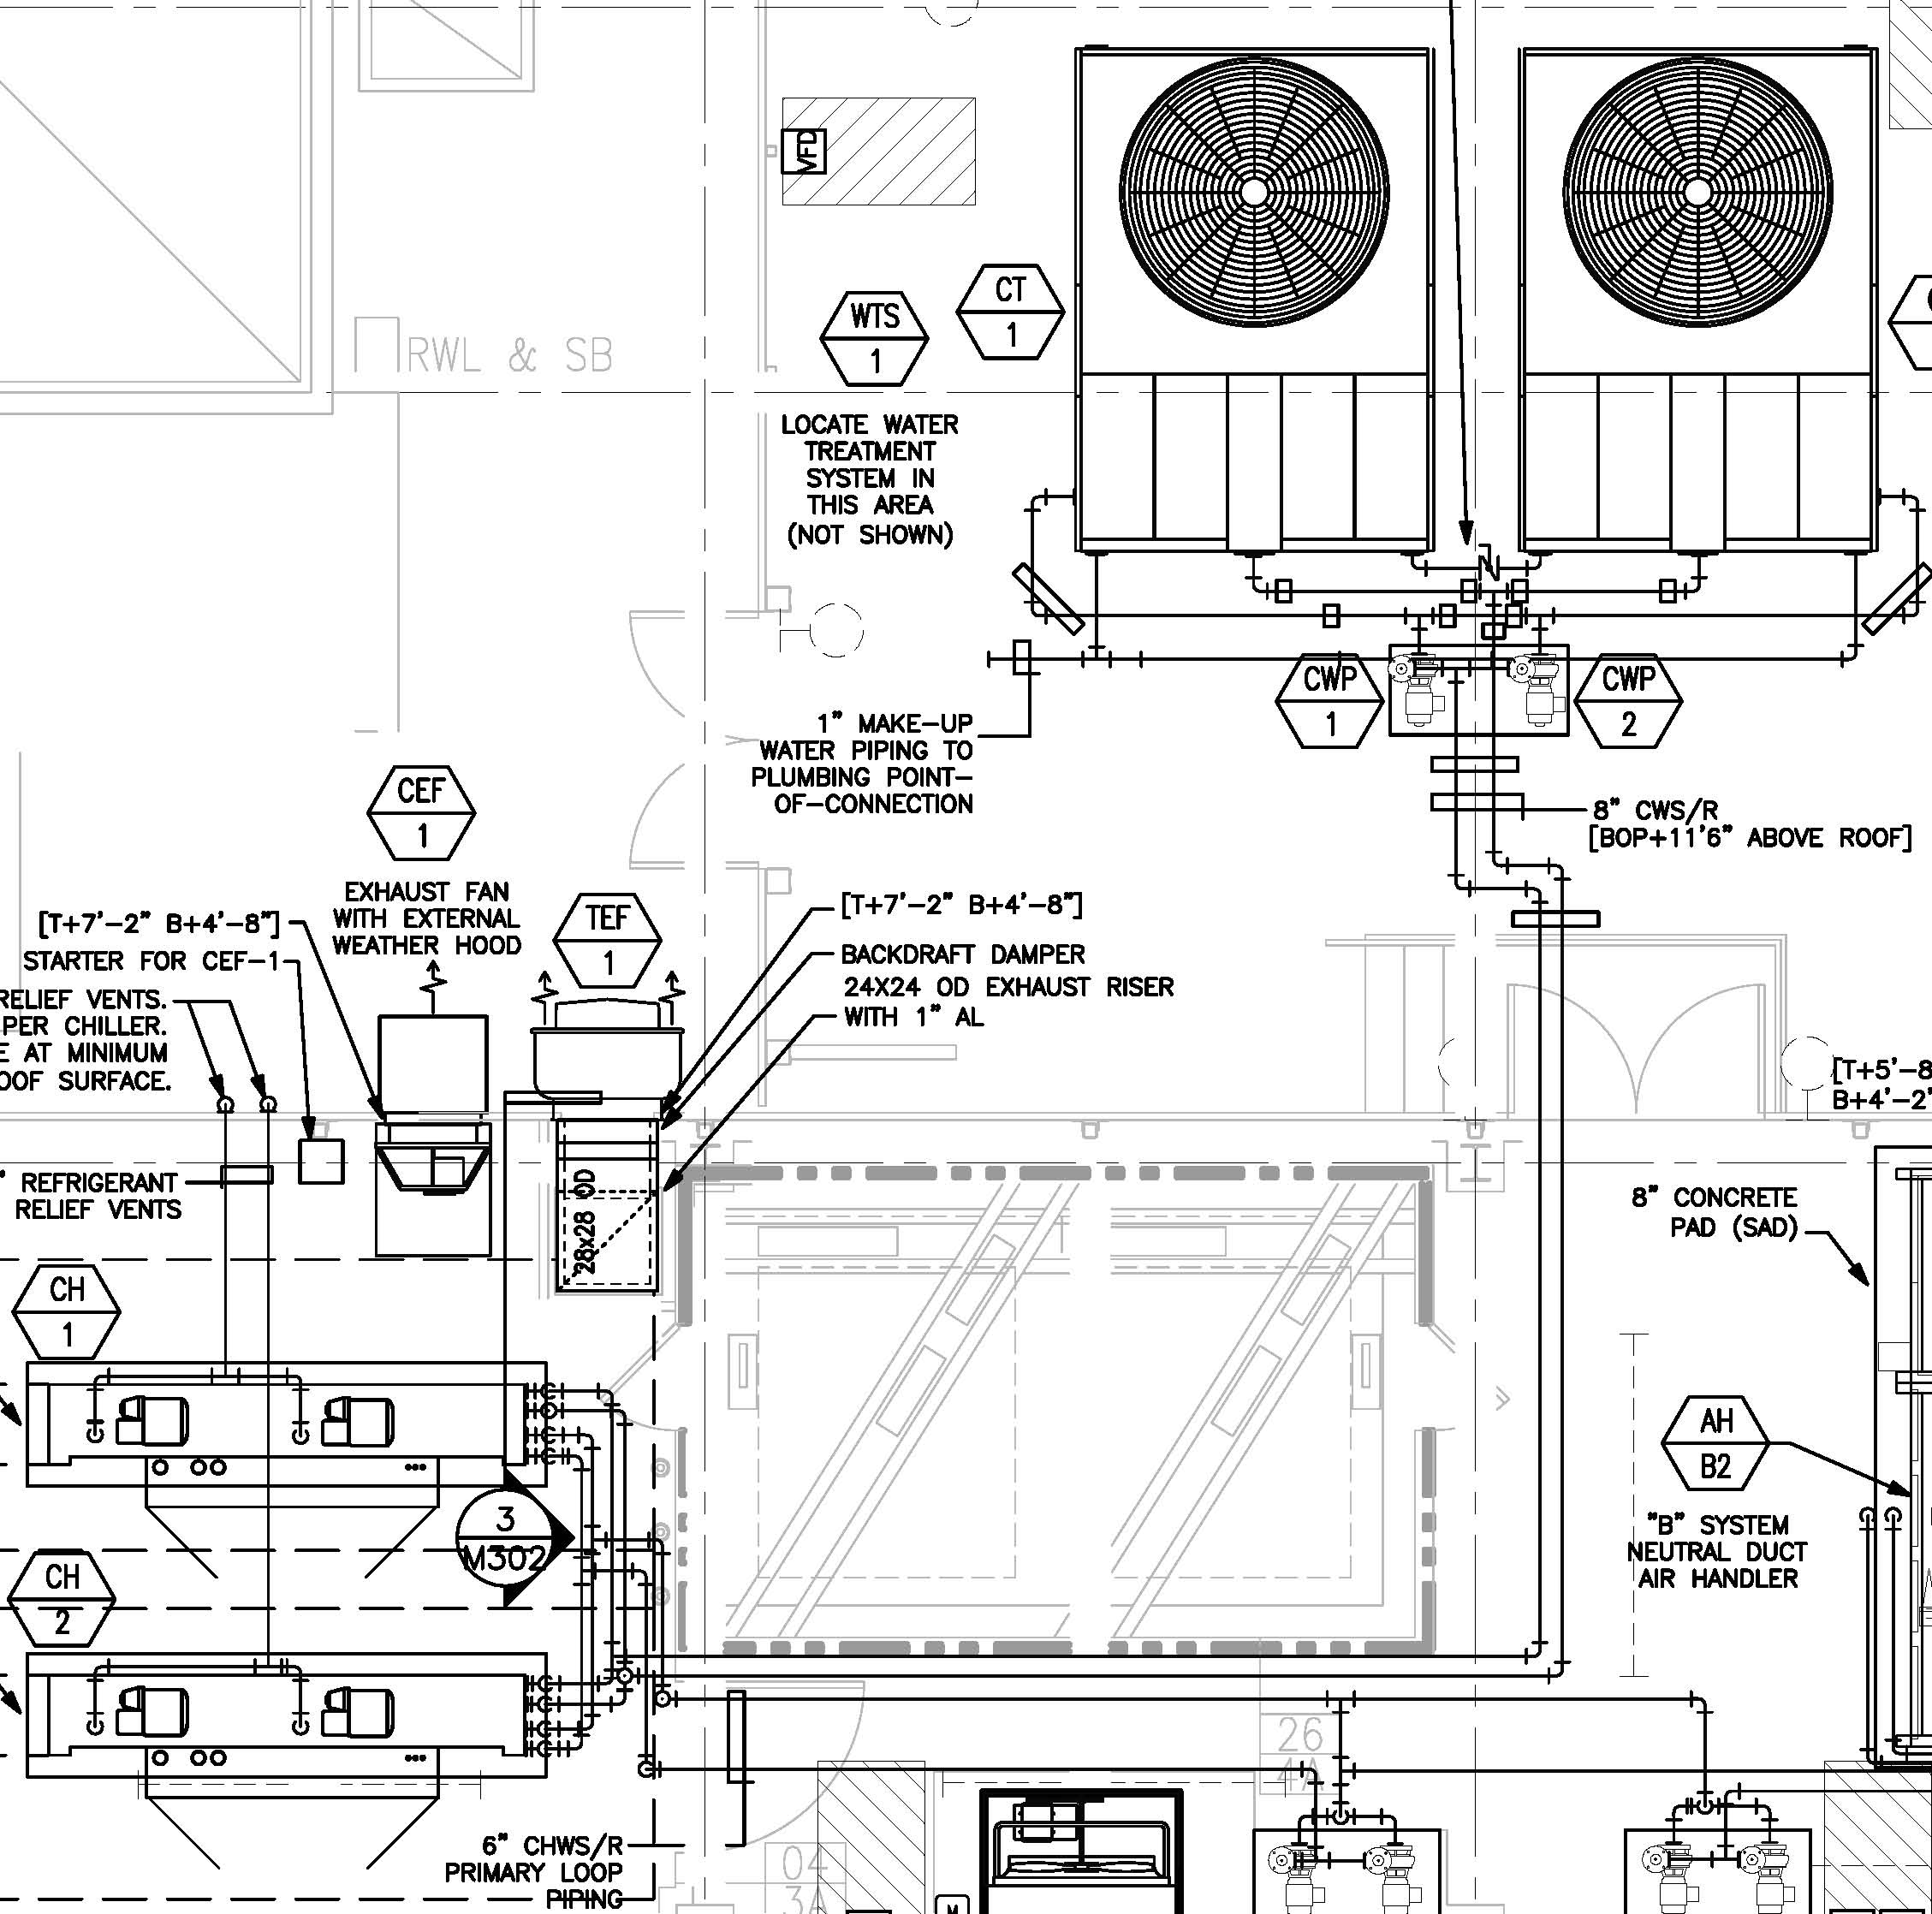 condensing unit diagram chiller systems wiring diagram for youchiller wiring diagram 5 [ 2257 x 2236 Pixel ]